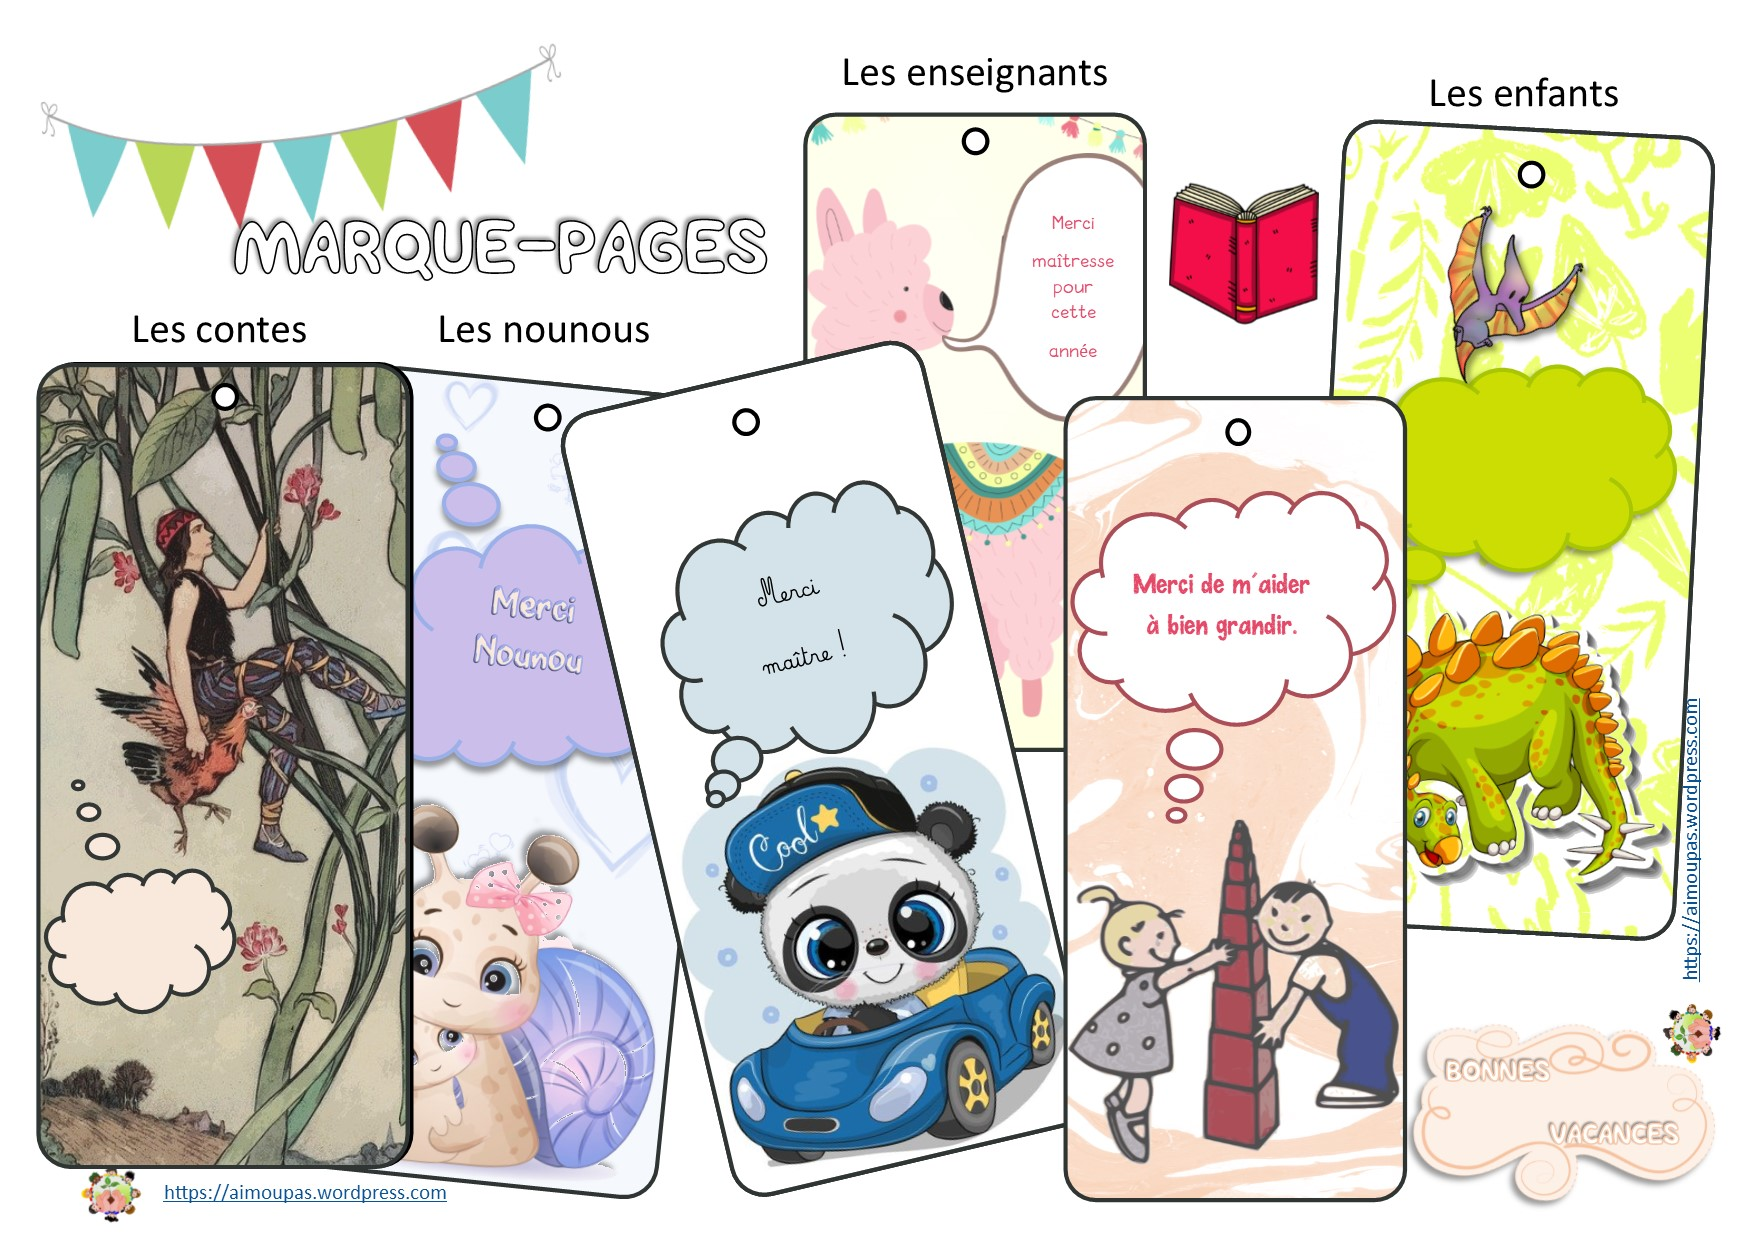 [Folder] Marque-pages